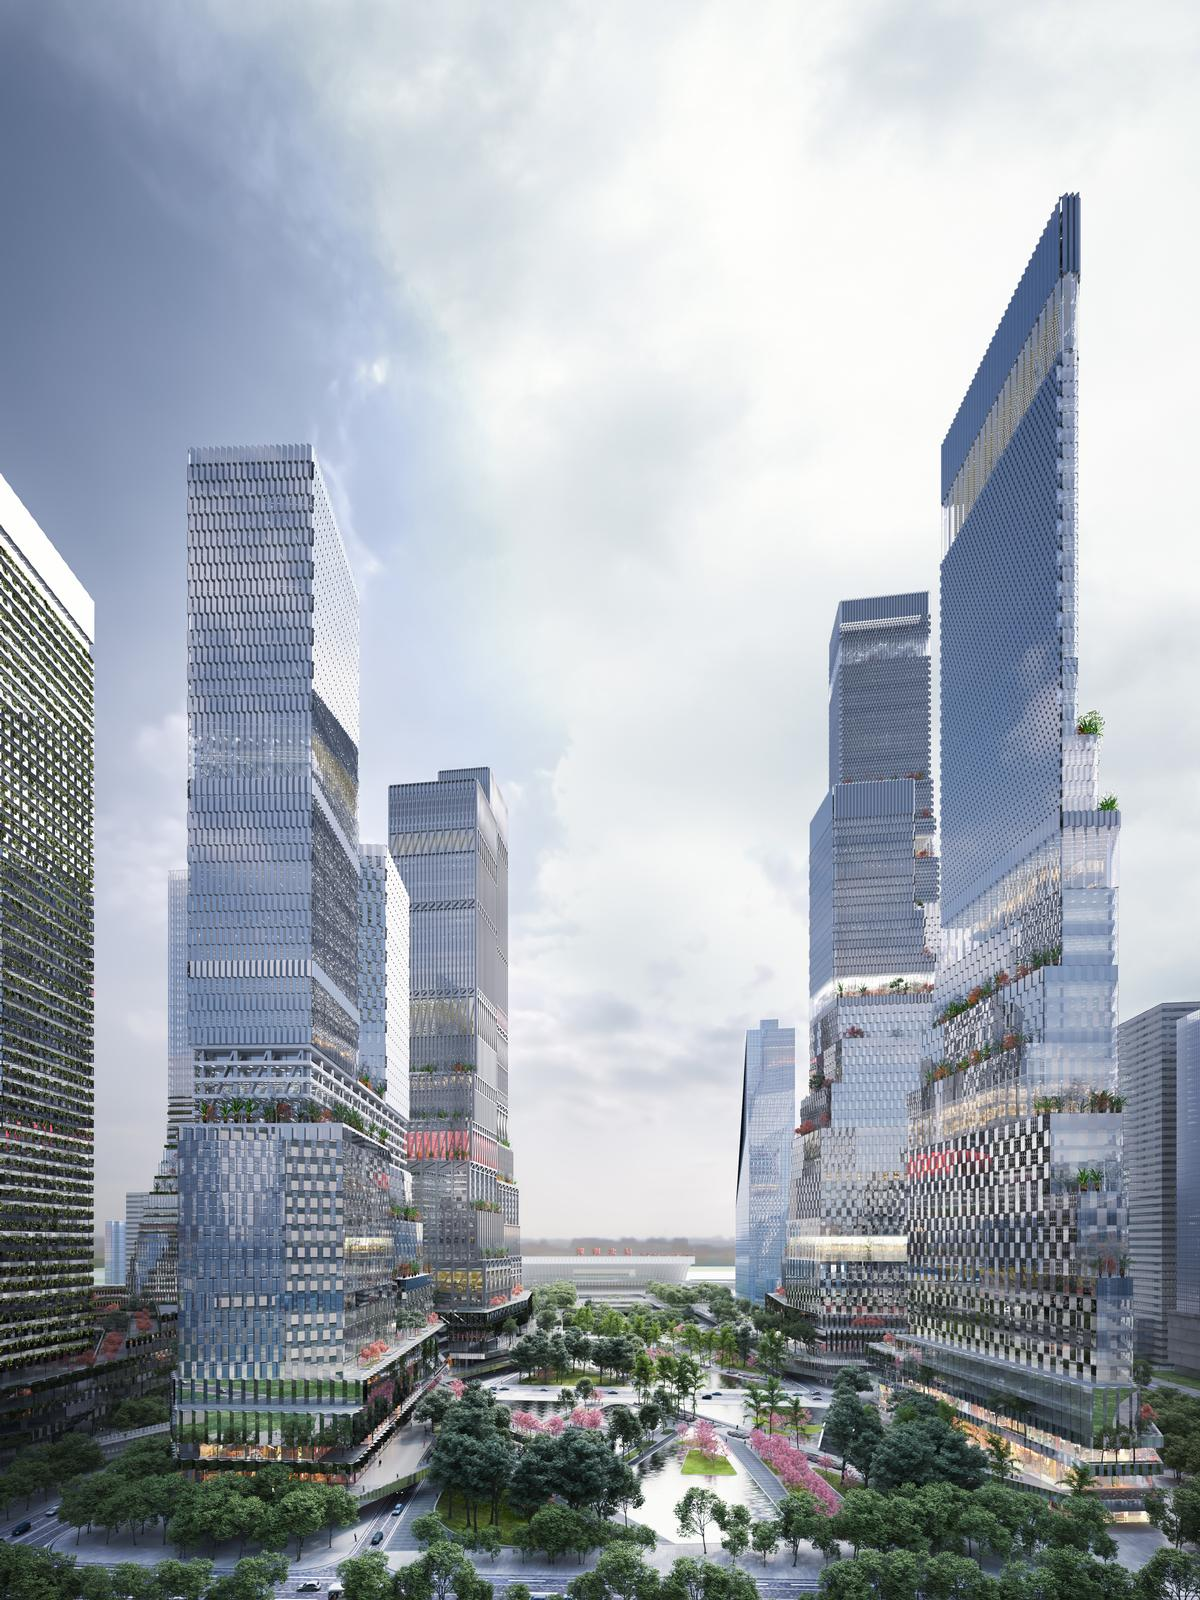 Twelve staggered skyscrapers, an elevated pedestrian network and a vast green urban park form the key elements of the 1.36 million sq m development / Mecanoo